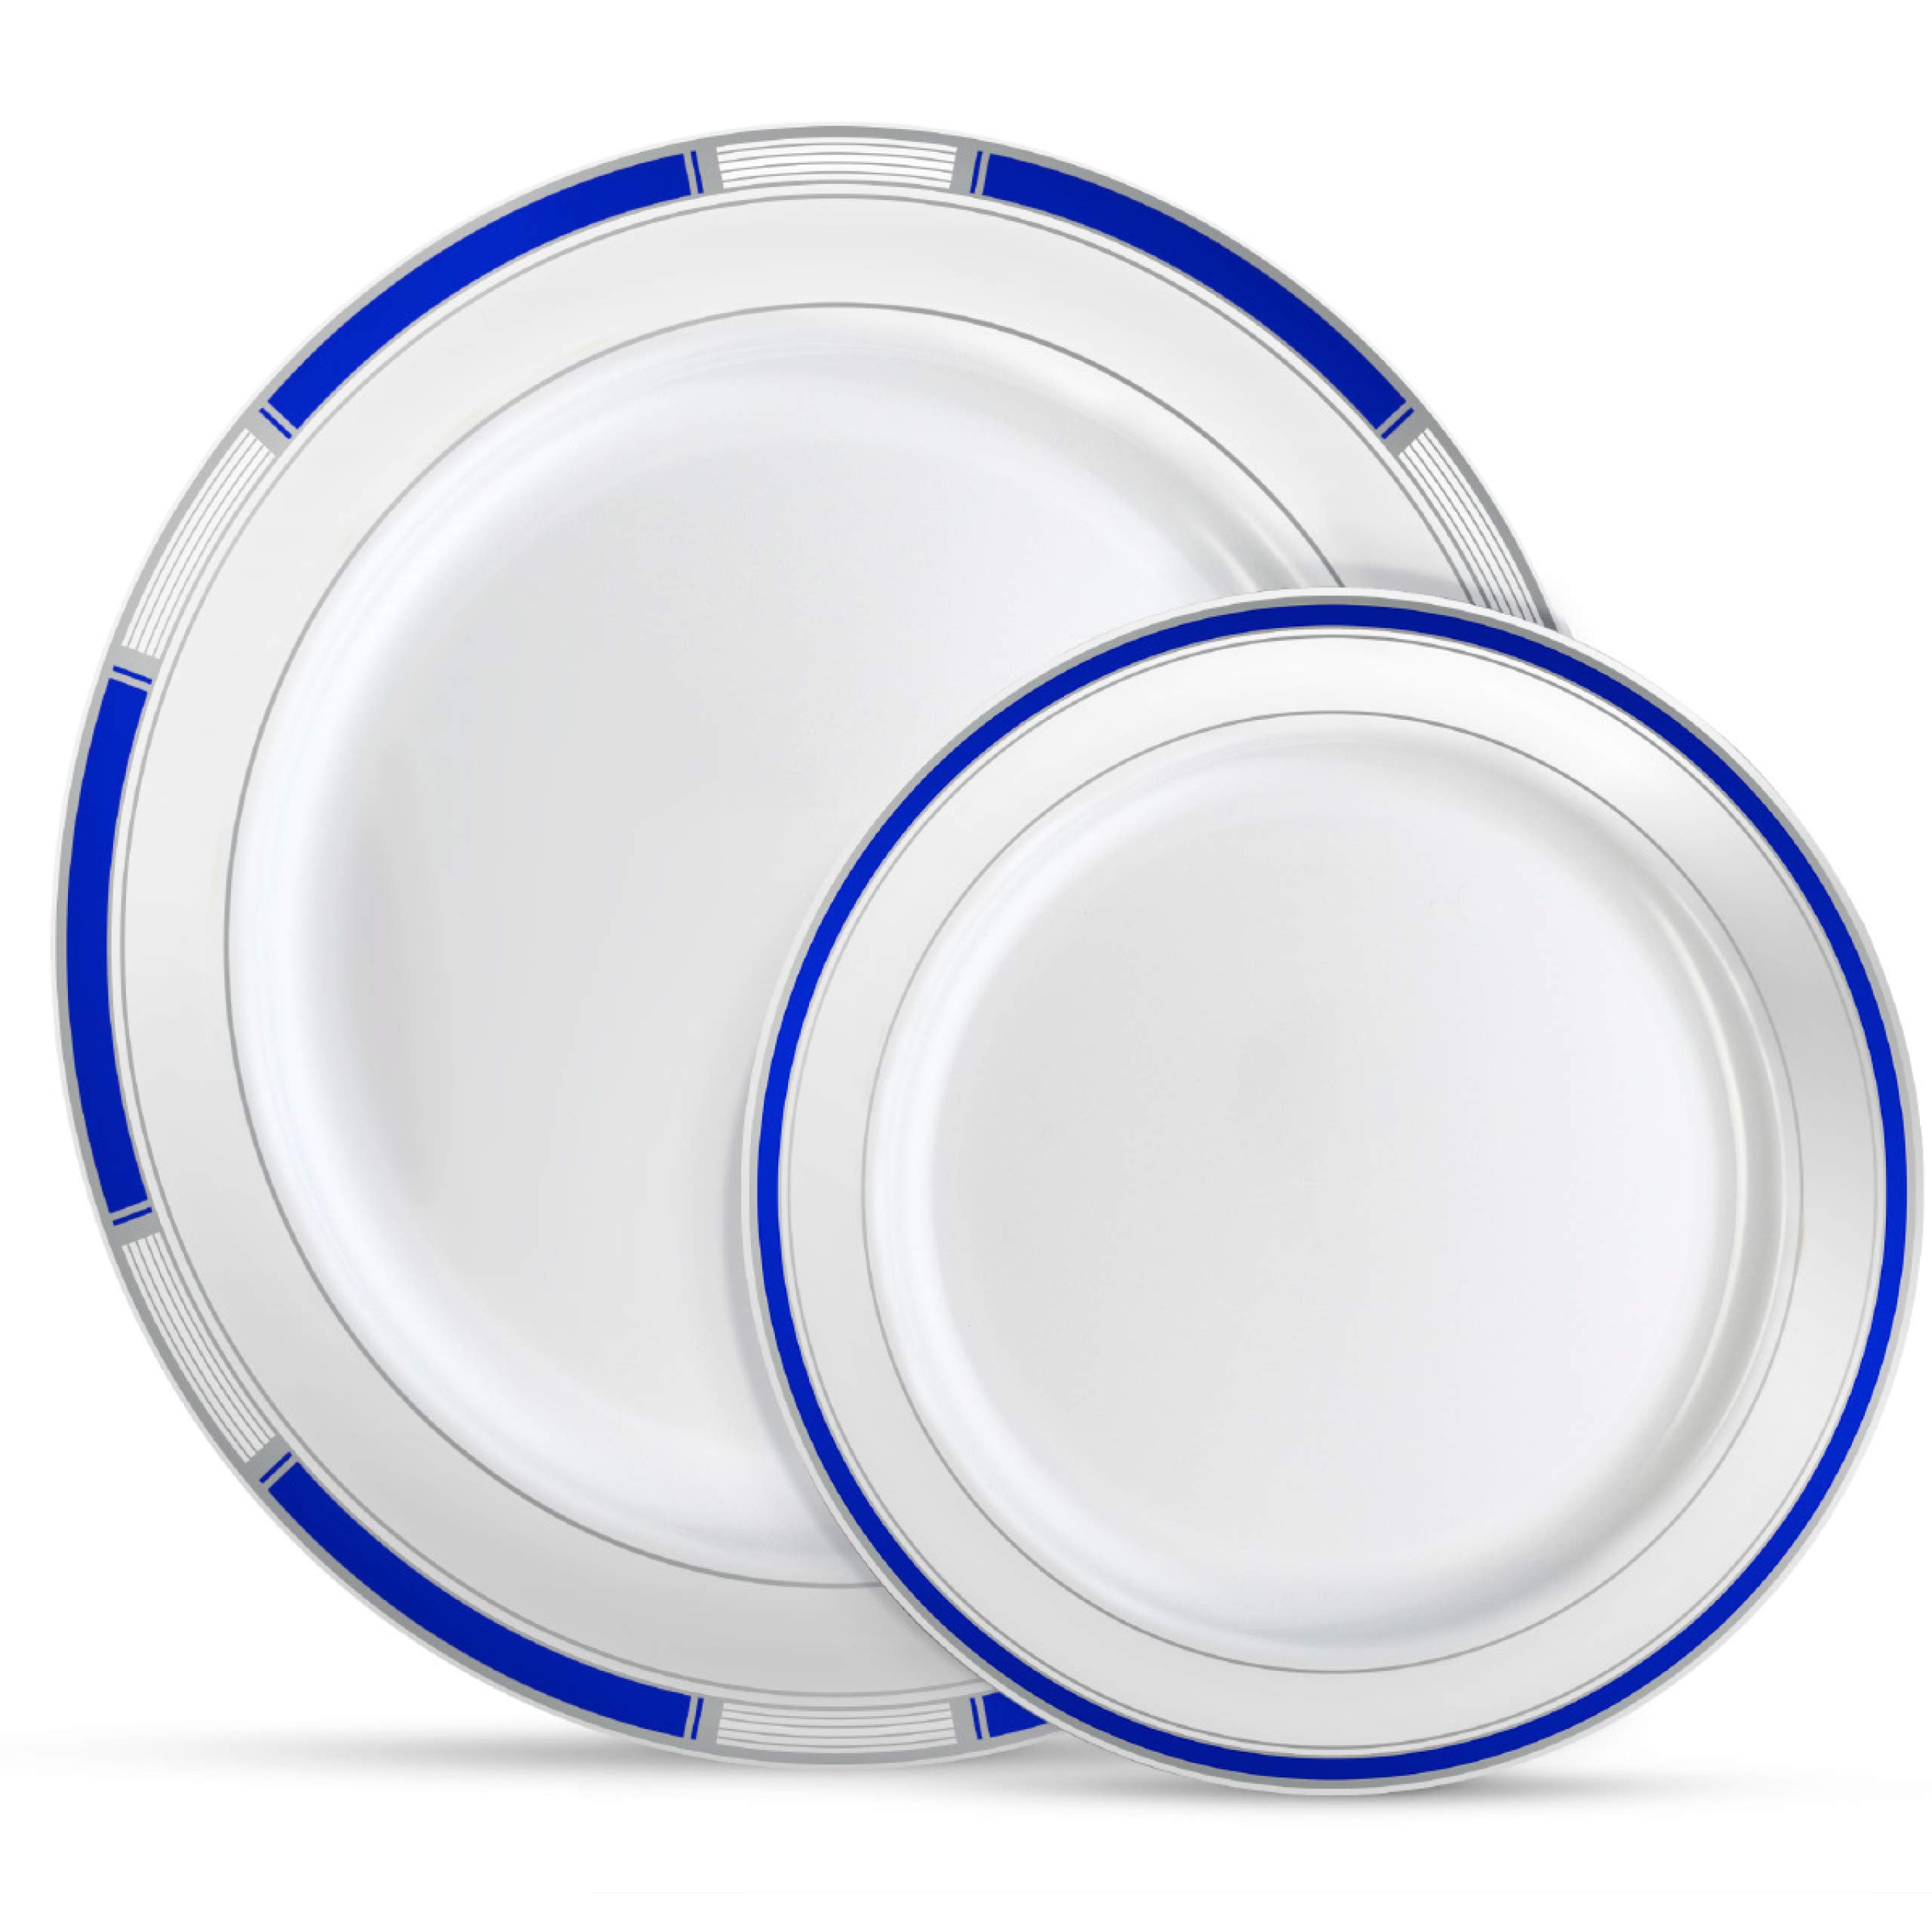 Laura Stein Designer Dinnerware Set | 64 Disposable Plastic Party Plates | Plates with Blue Rim & Silver Accents | Includes 32 x 10.75'' Dinner Plates + 32 x 7.5'' Salad Plates | Venetian by Laura Stein